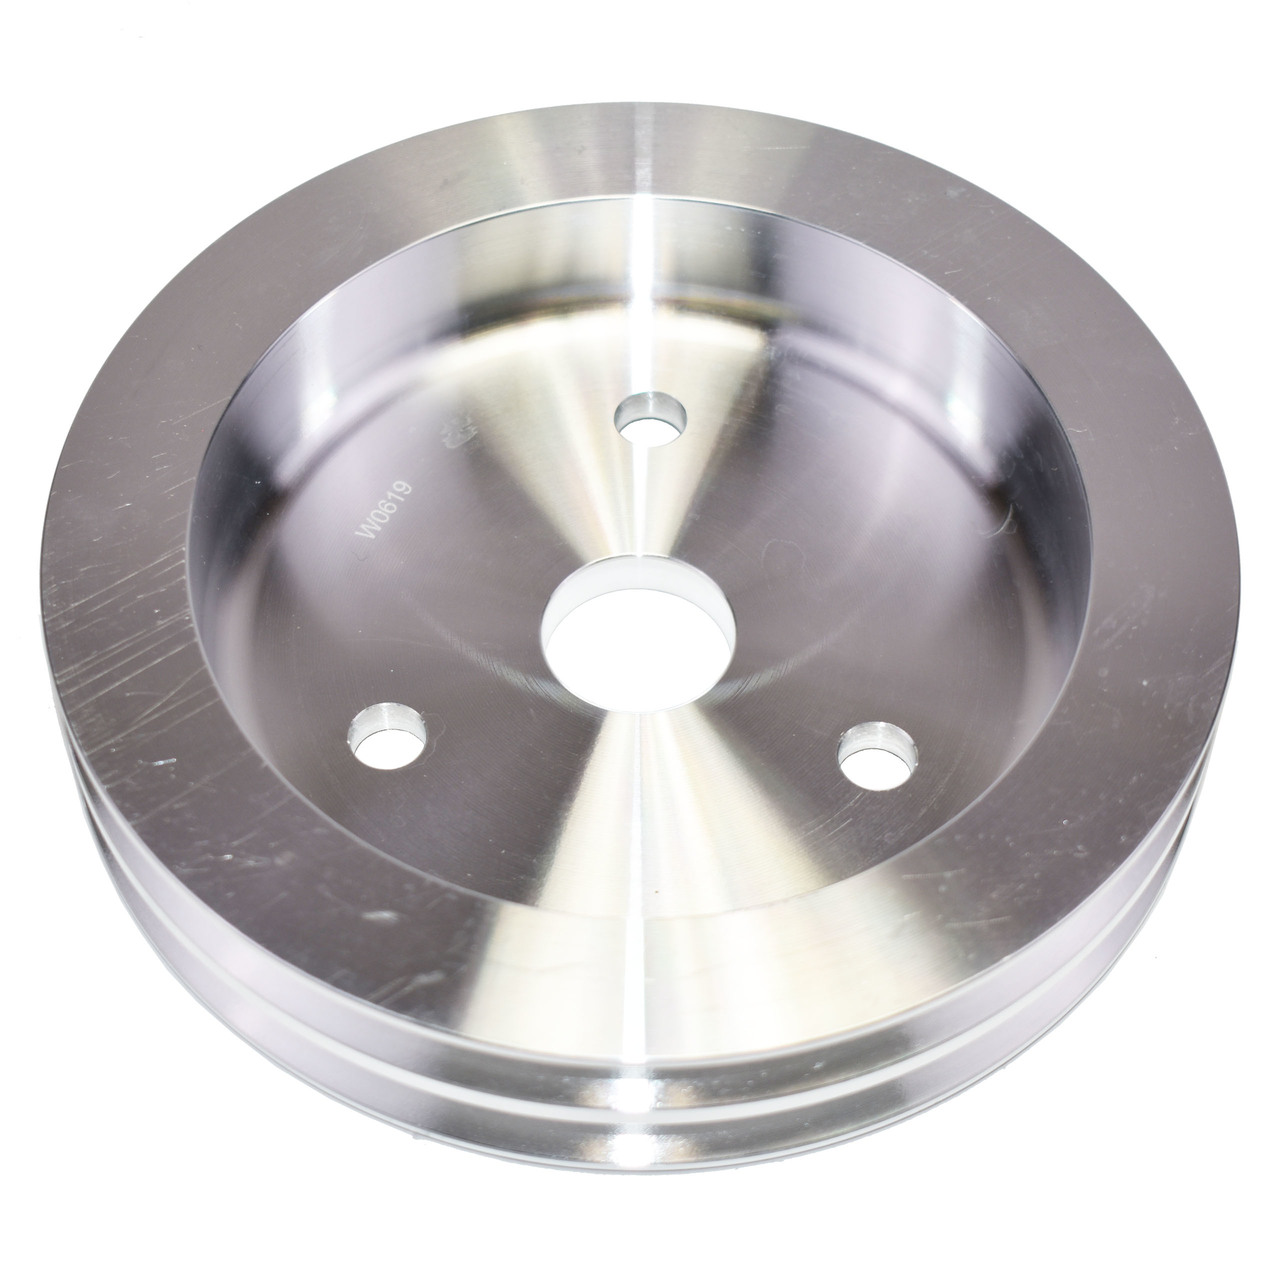 A-Team Performance CHEVY SMALL BLOCK SHORT WATER PUMP DOUBLE-GROOVE ALUMINUM CRANKSHAFT PULLEY